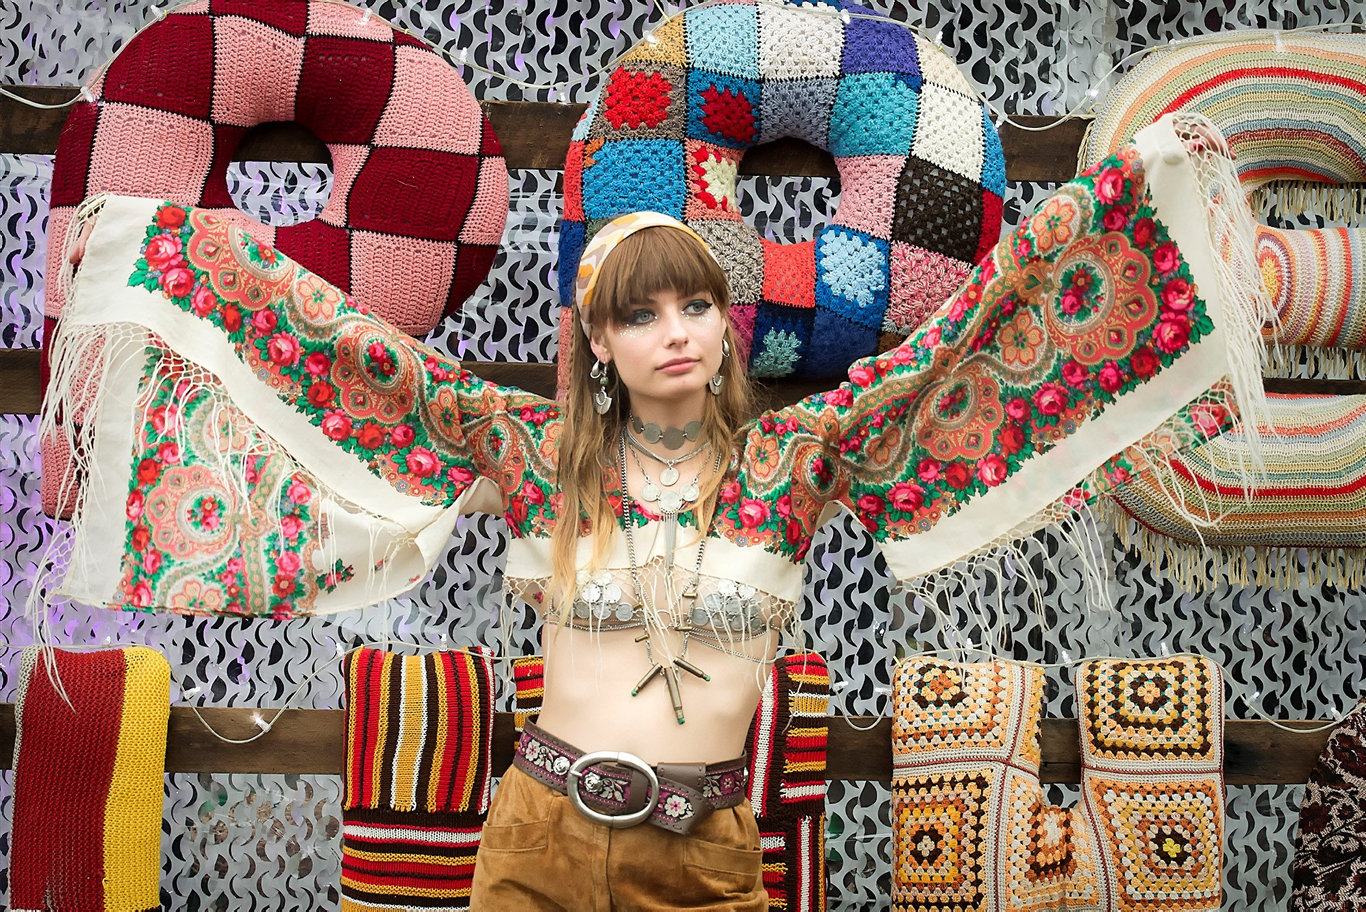 Boho is sure to be popular again this year at Splendour in the Grass.